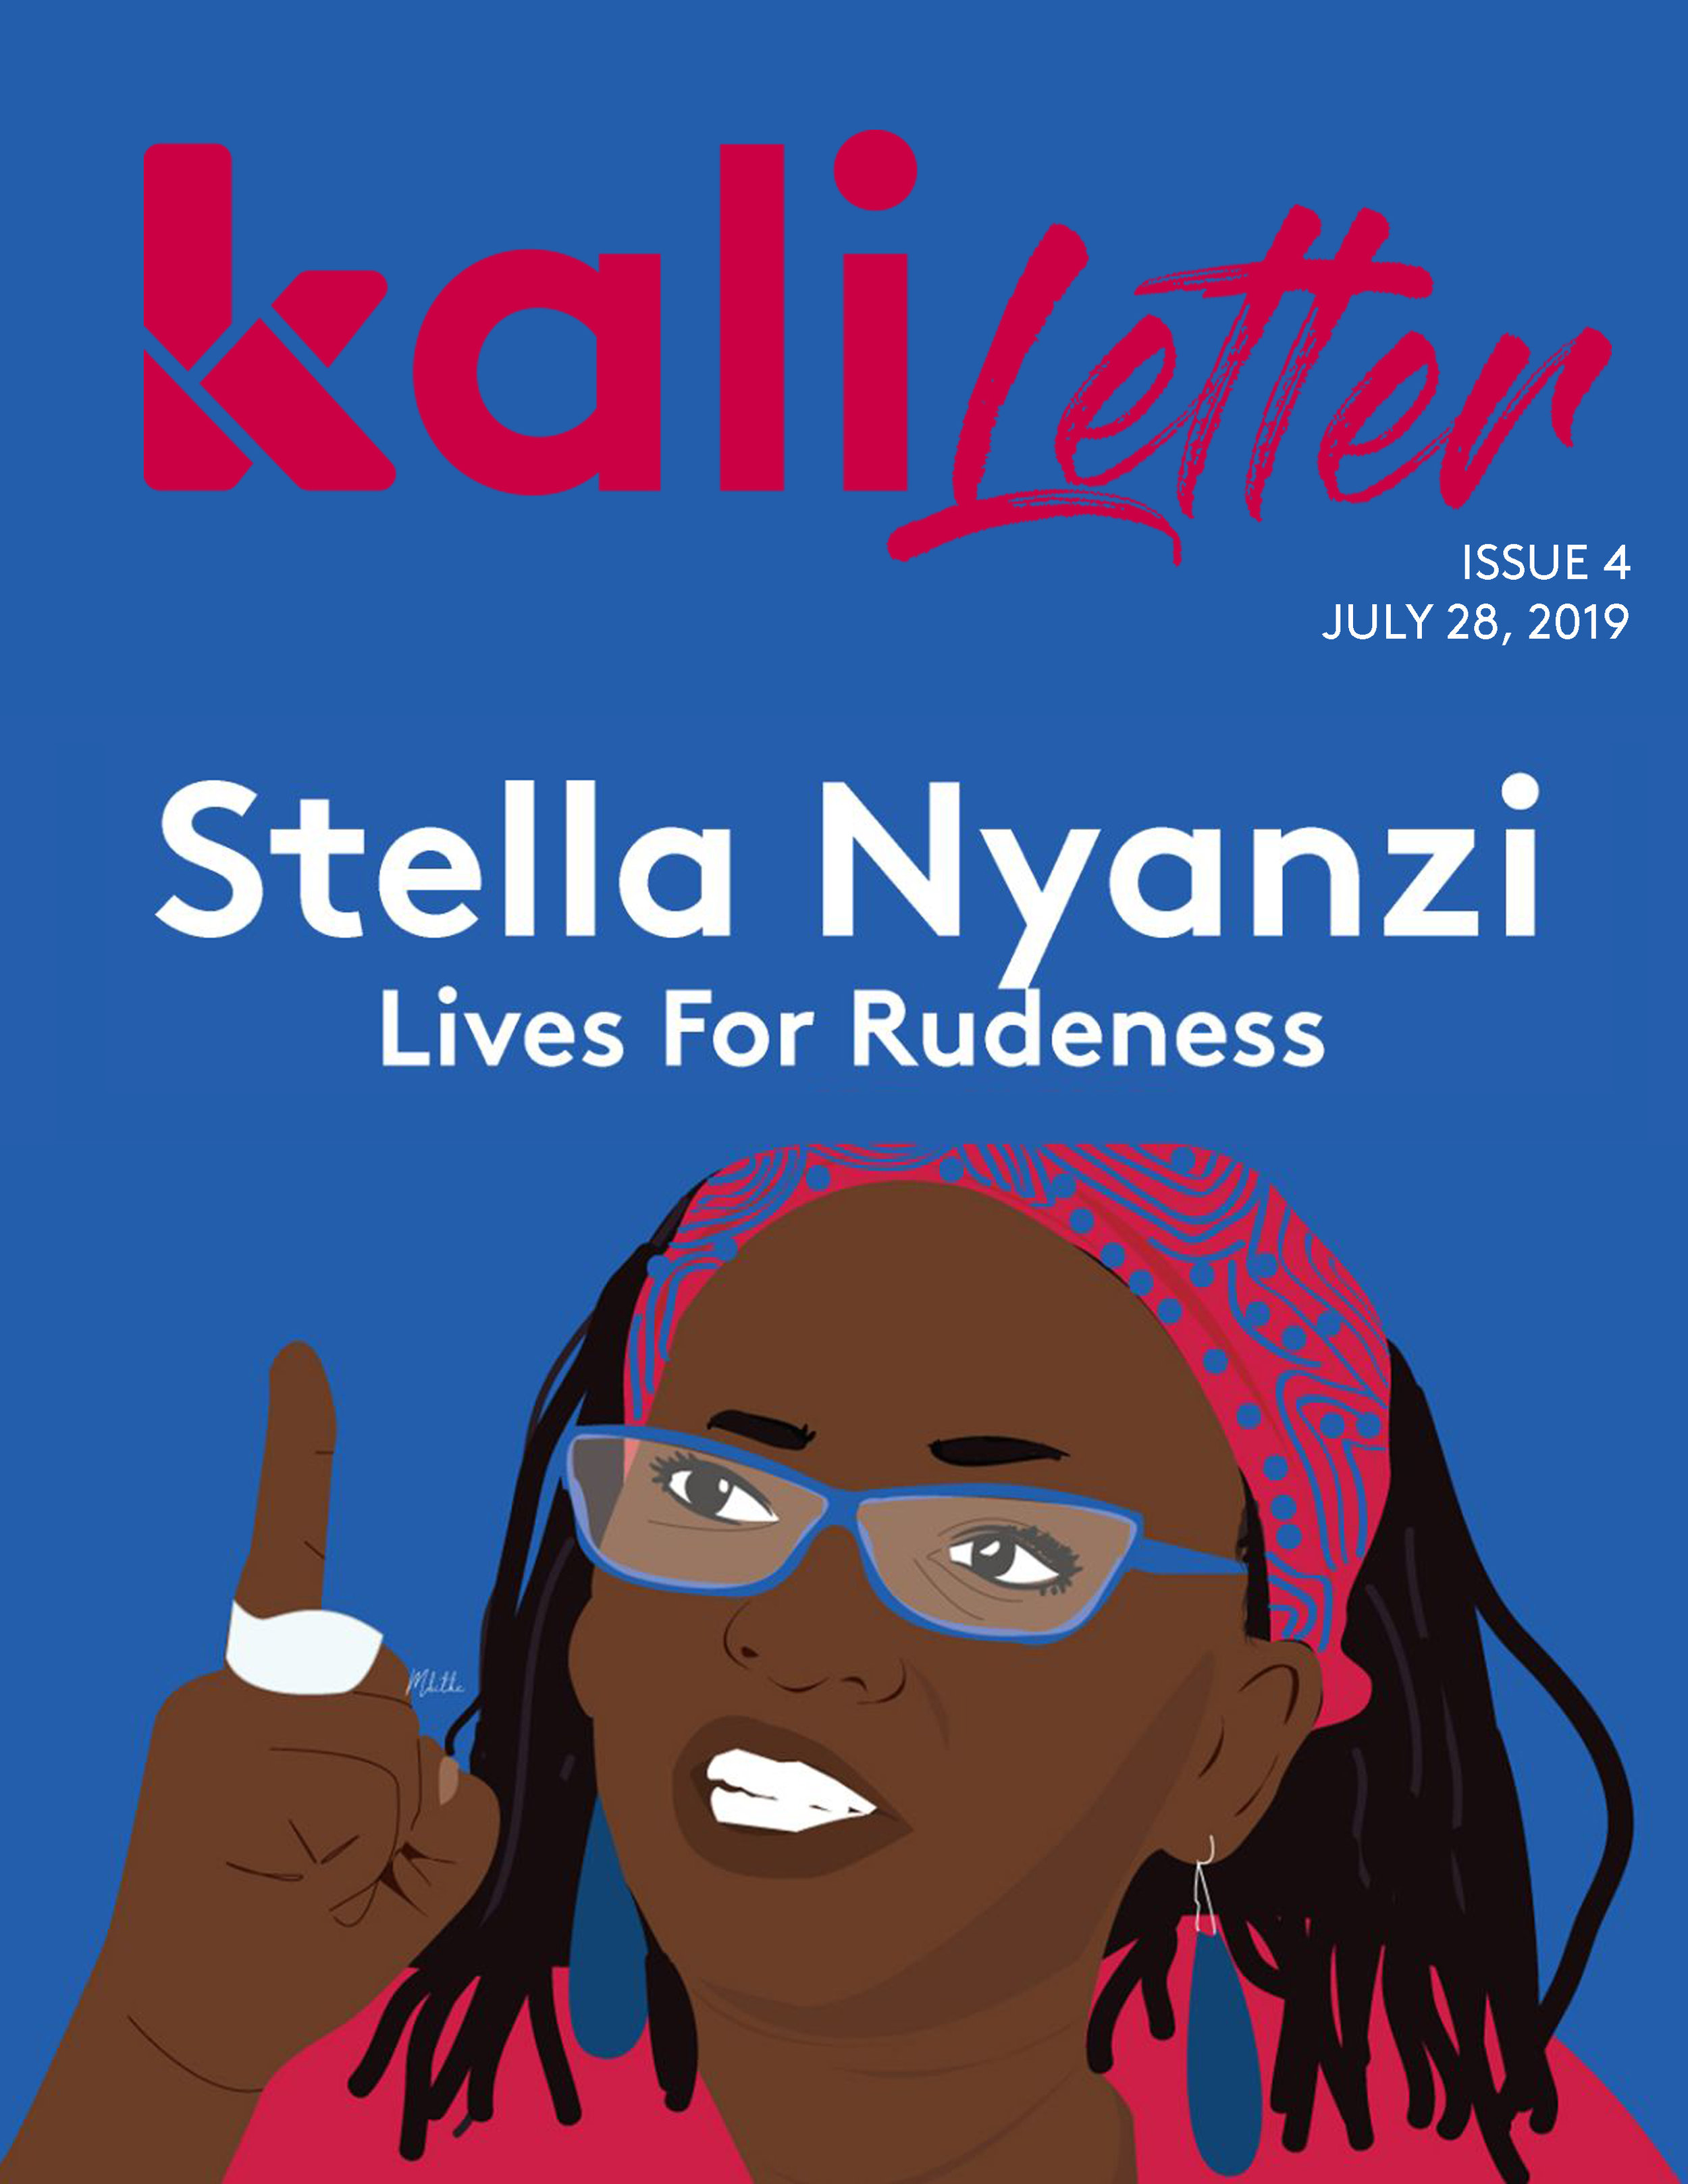 STELLA NYANZI LIVES FOR RUDENESS     Issue #:  4  Release Date:   July 28, 2019   ...And vulgarity is the weapon of choice for this polarizing Ugandan activist.